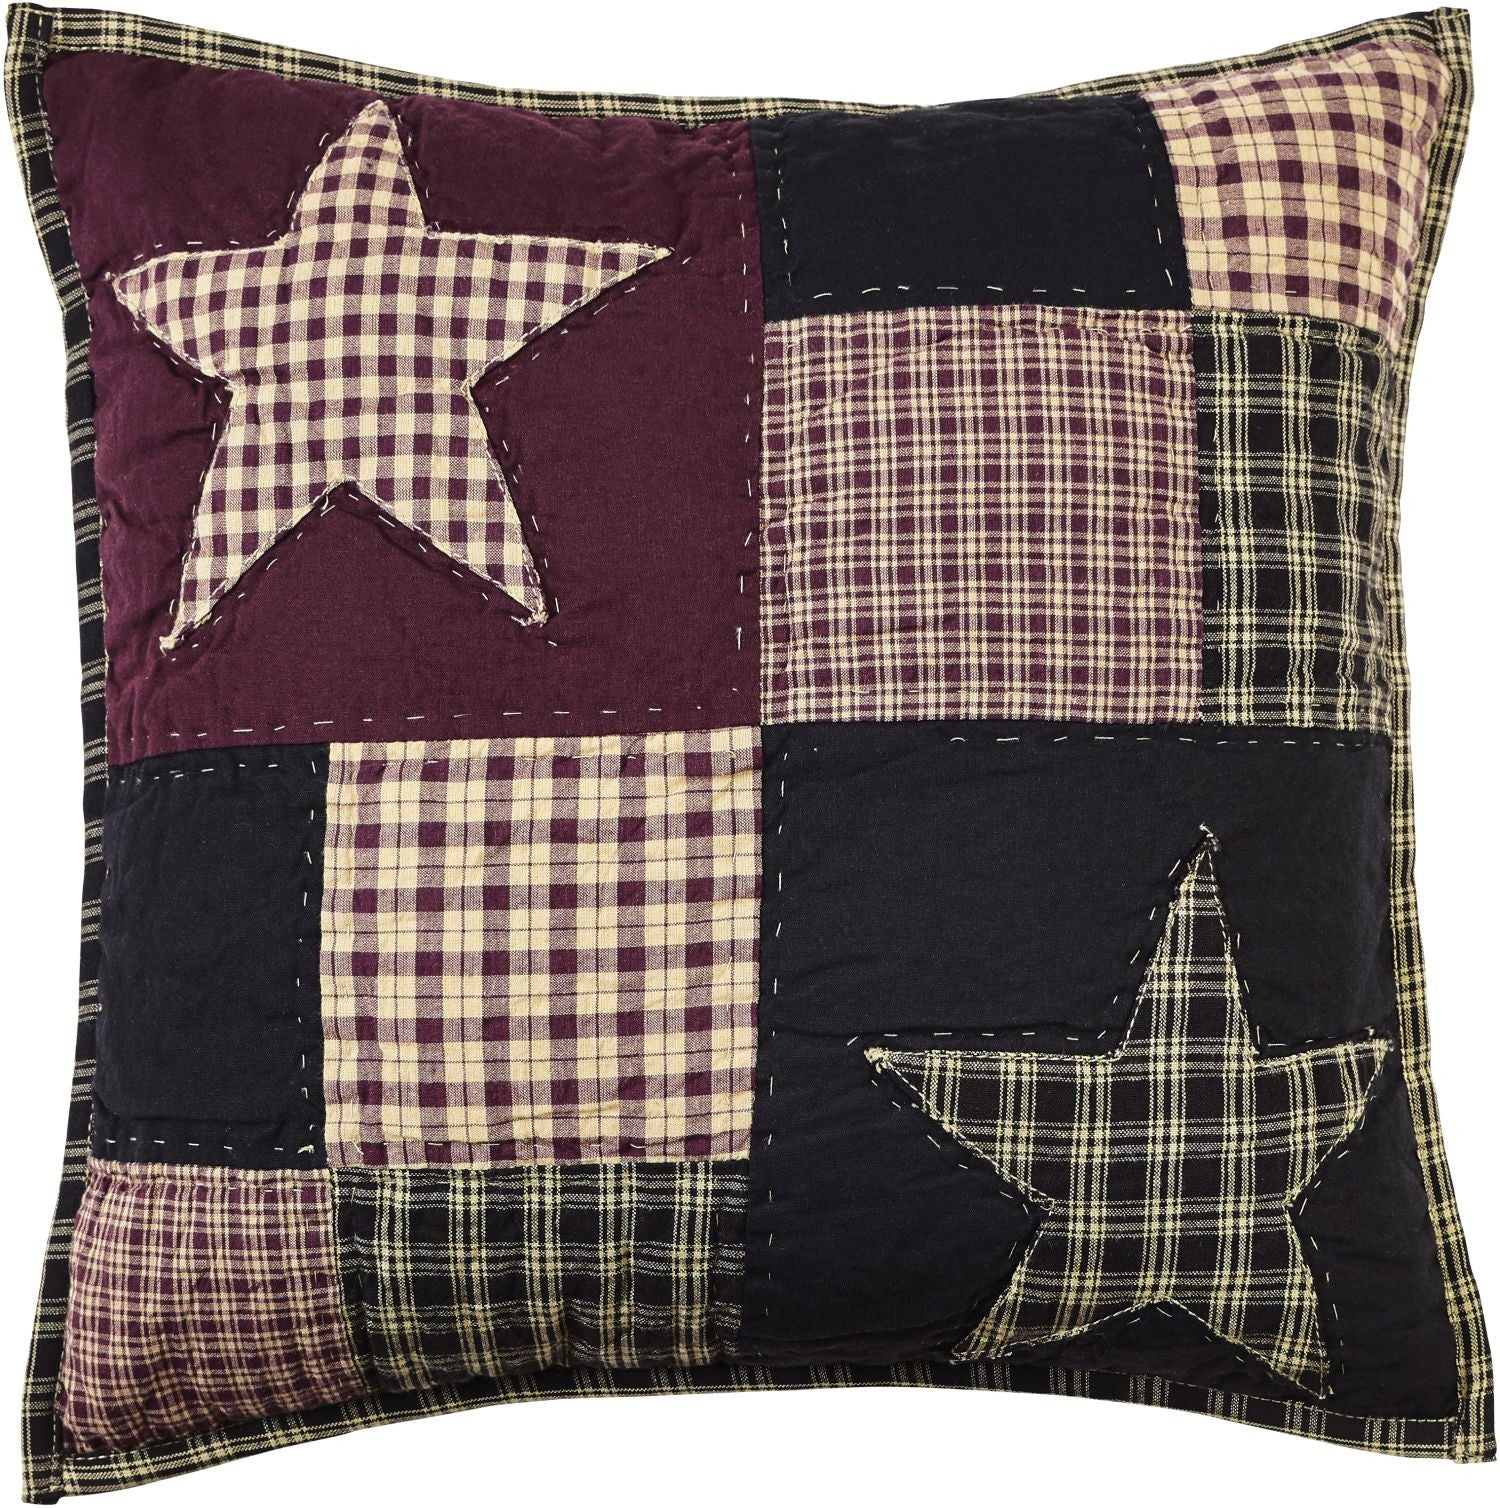 Plum Creek Quilted Star Pillow Cover Allysons Place